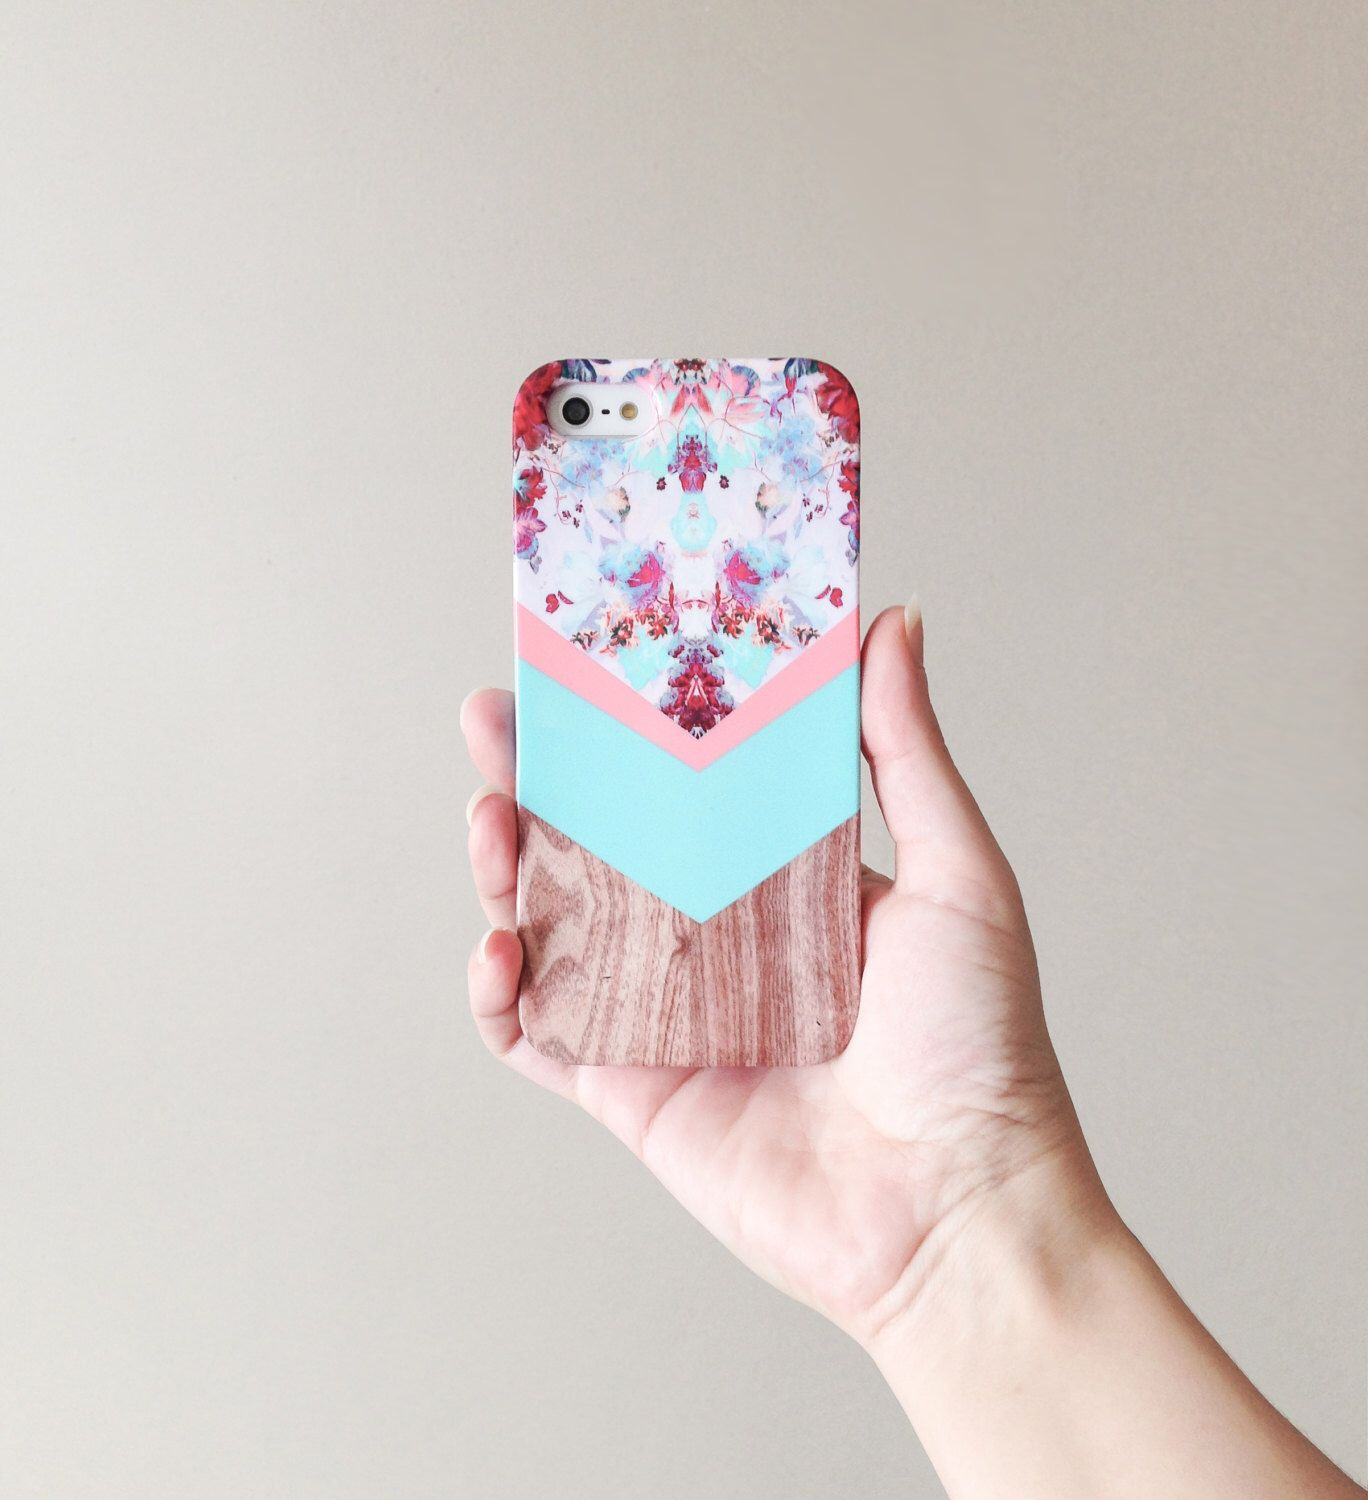 iPhone 6 Case Wood Print, Floral Cases iPhone 4s Case Wood Print Flowers iPhone Case, Geometric Cases Mint Galaxy s4 Case Cute iPhone Cases by casesbycsera on Etsy https://www.etsy.com/listing/188032959/iphone-6-case-wood-print-floral-cases